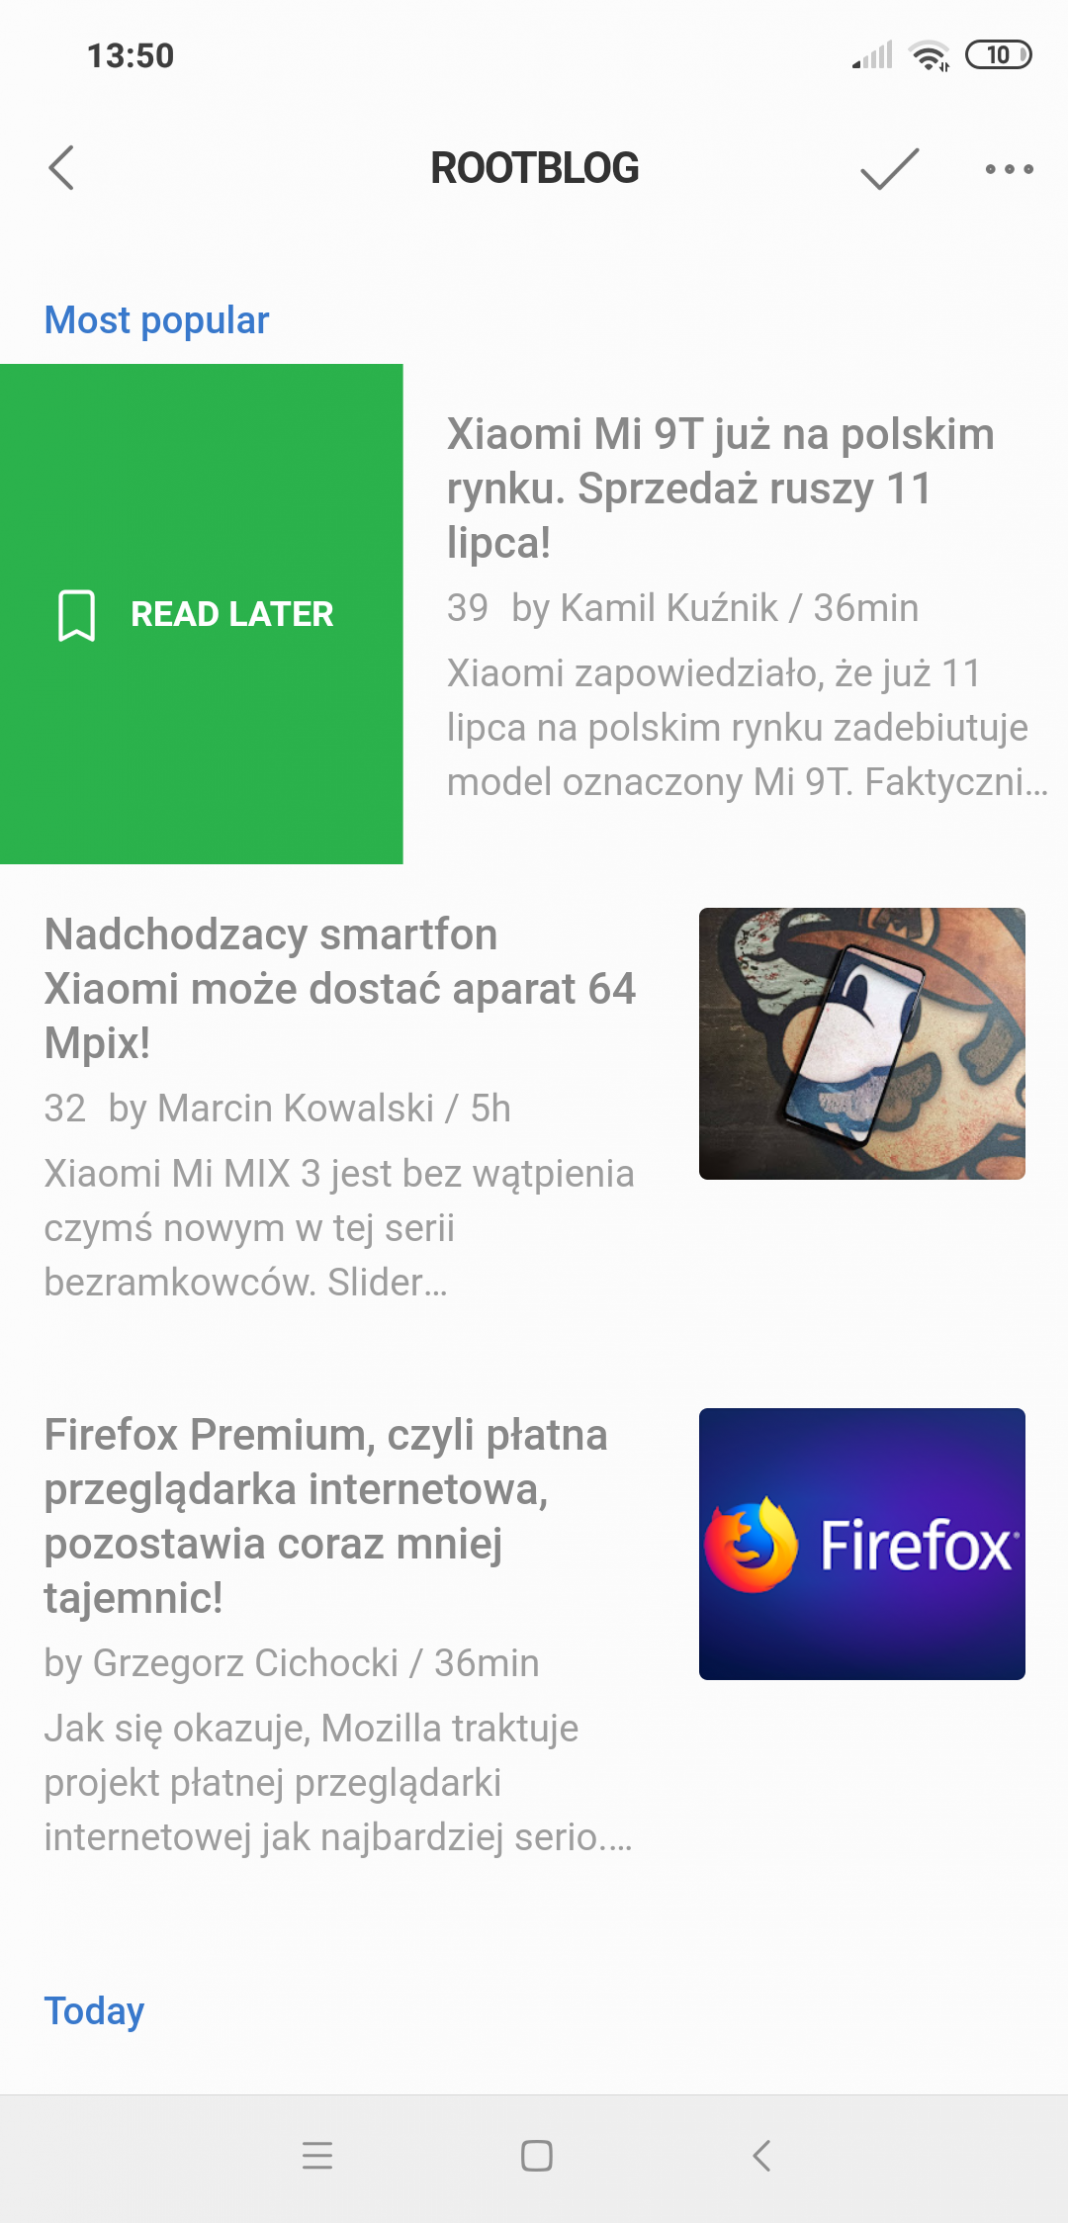 Feedly ROOTgear Huberta